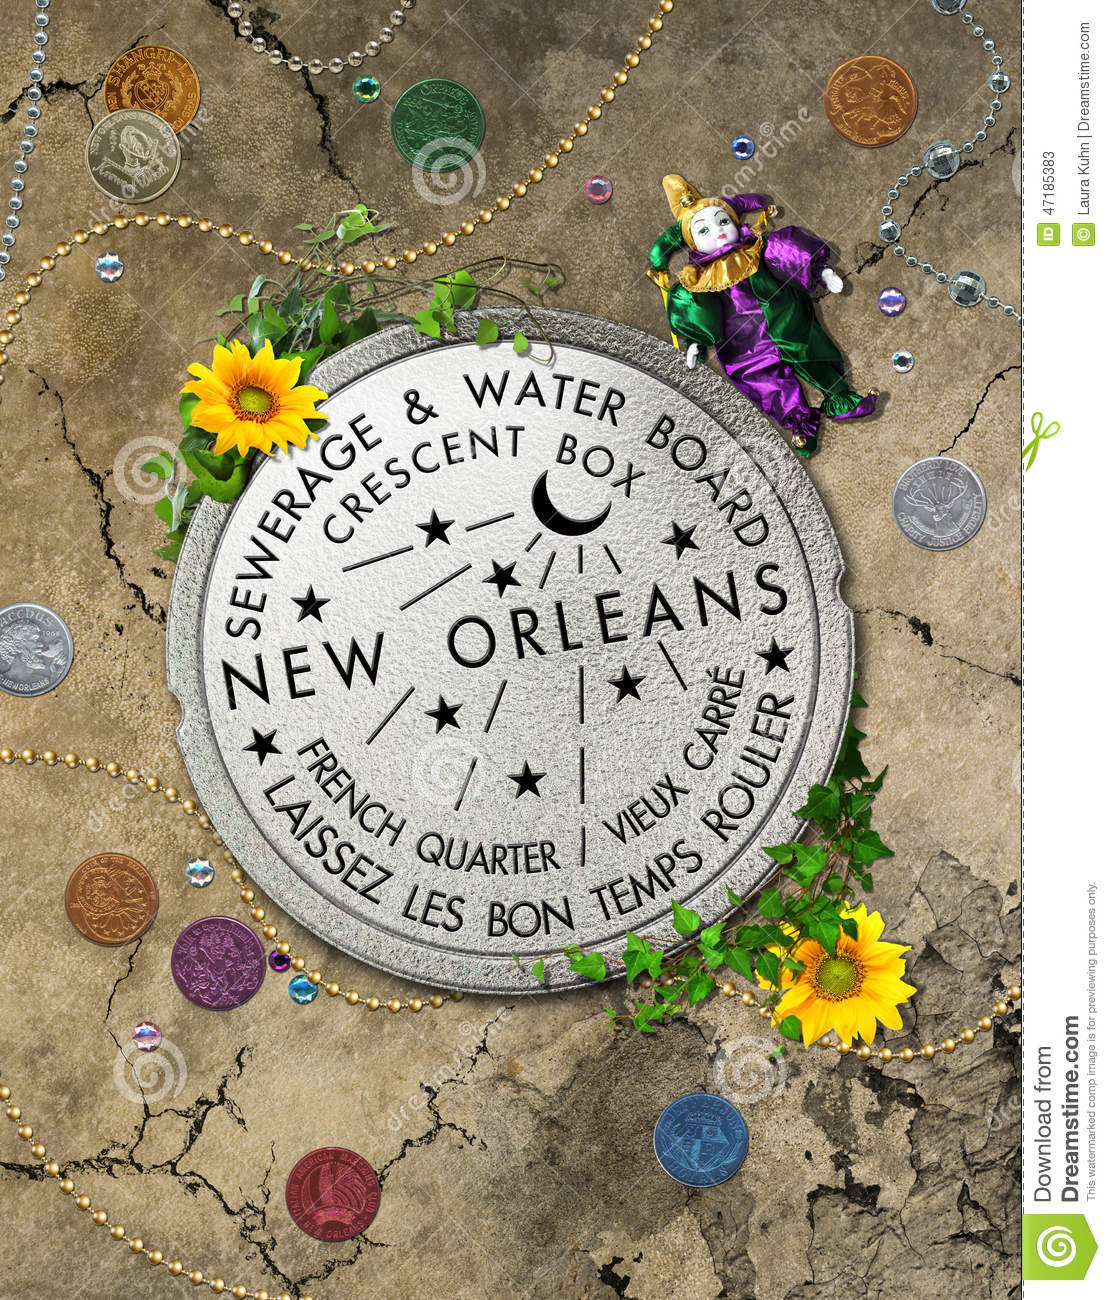 new orleans iconic water meter stock illustration